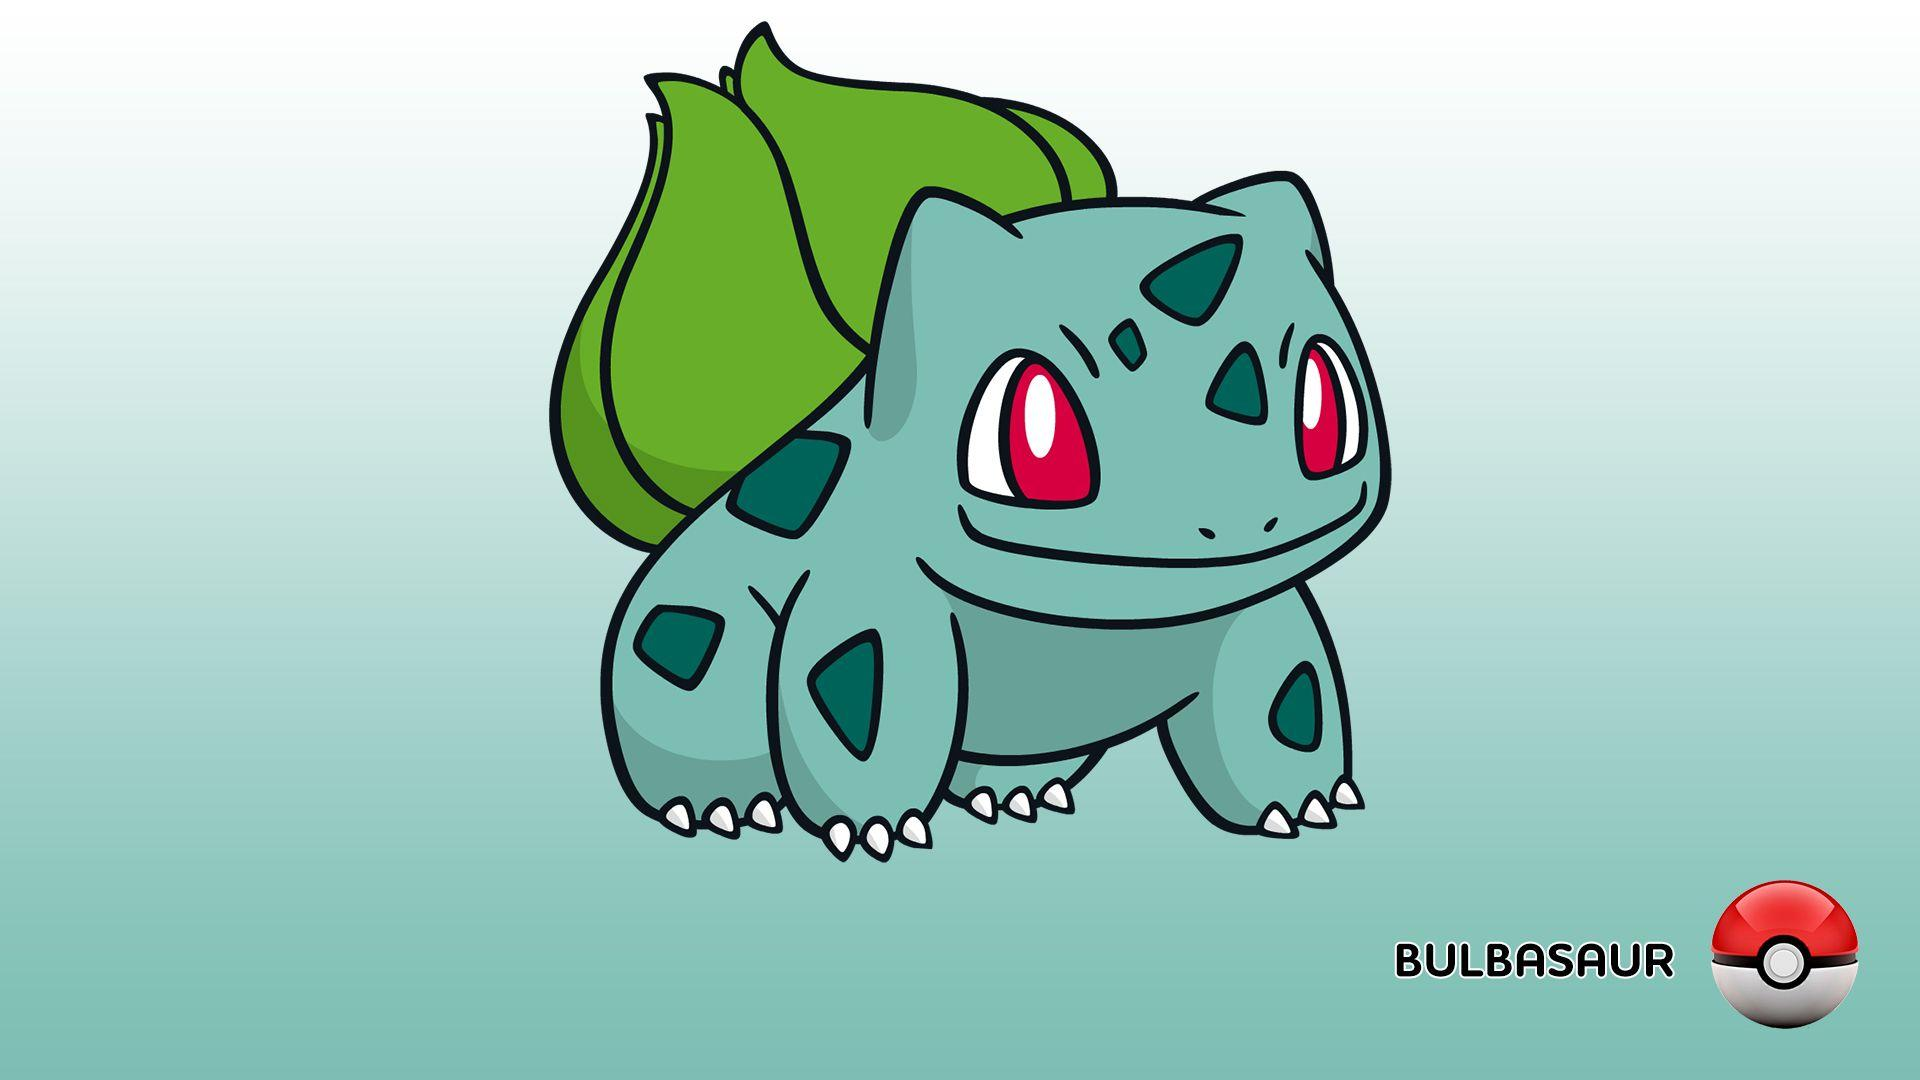 wallpaper.wiki-HQ-Bulbasaur-Background-PIC-WPB0013358 - wallpaper.wiki